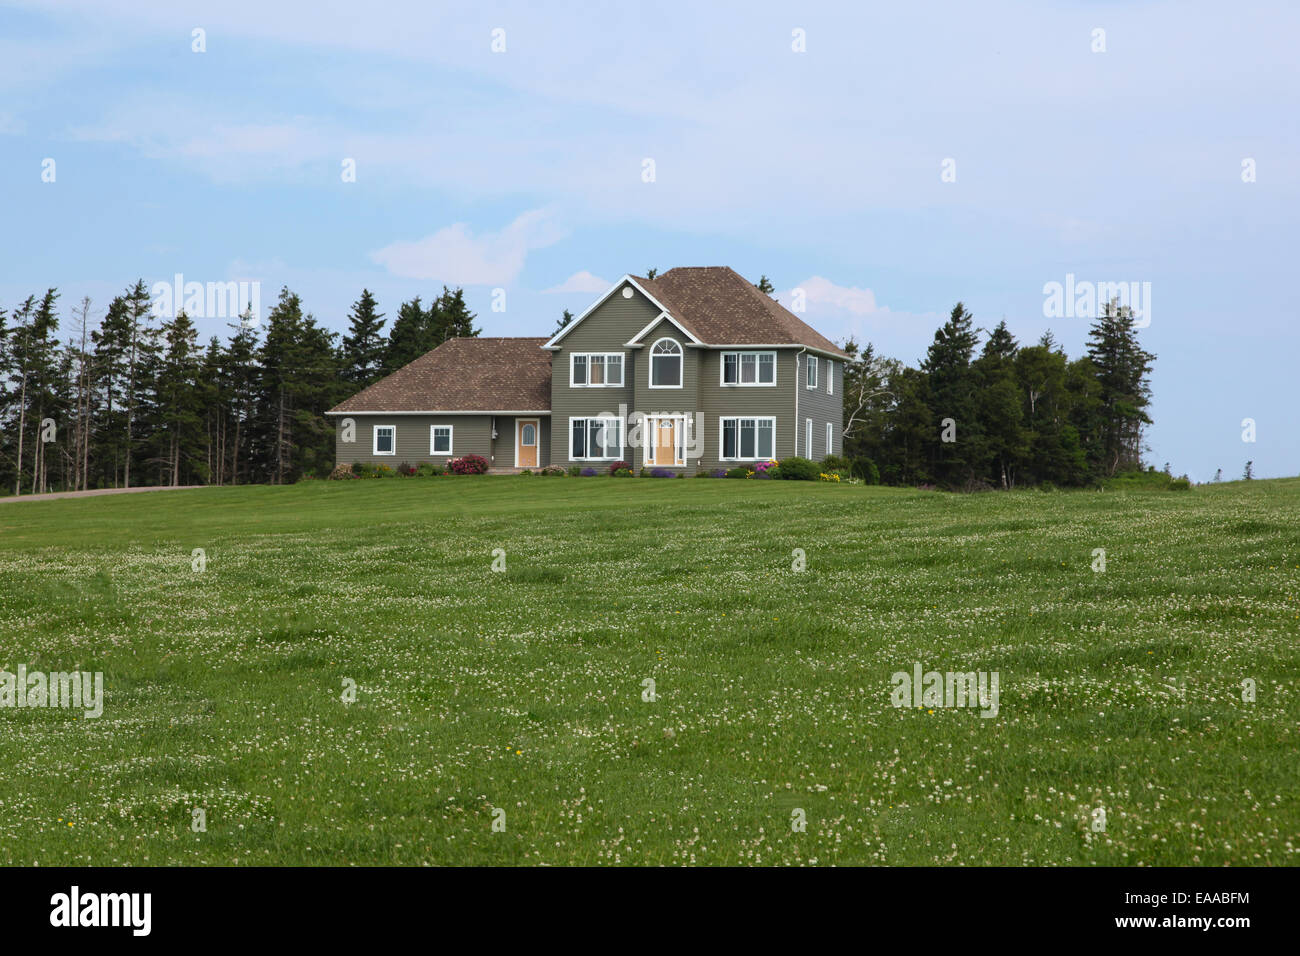 Luxury home with landscaped front yard in Summer - Stock Image